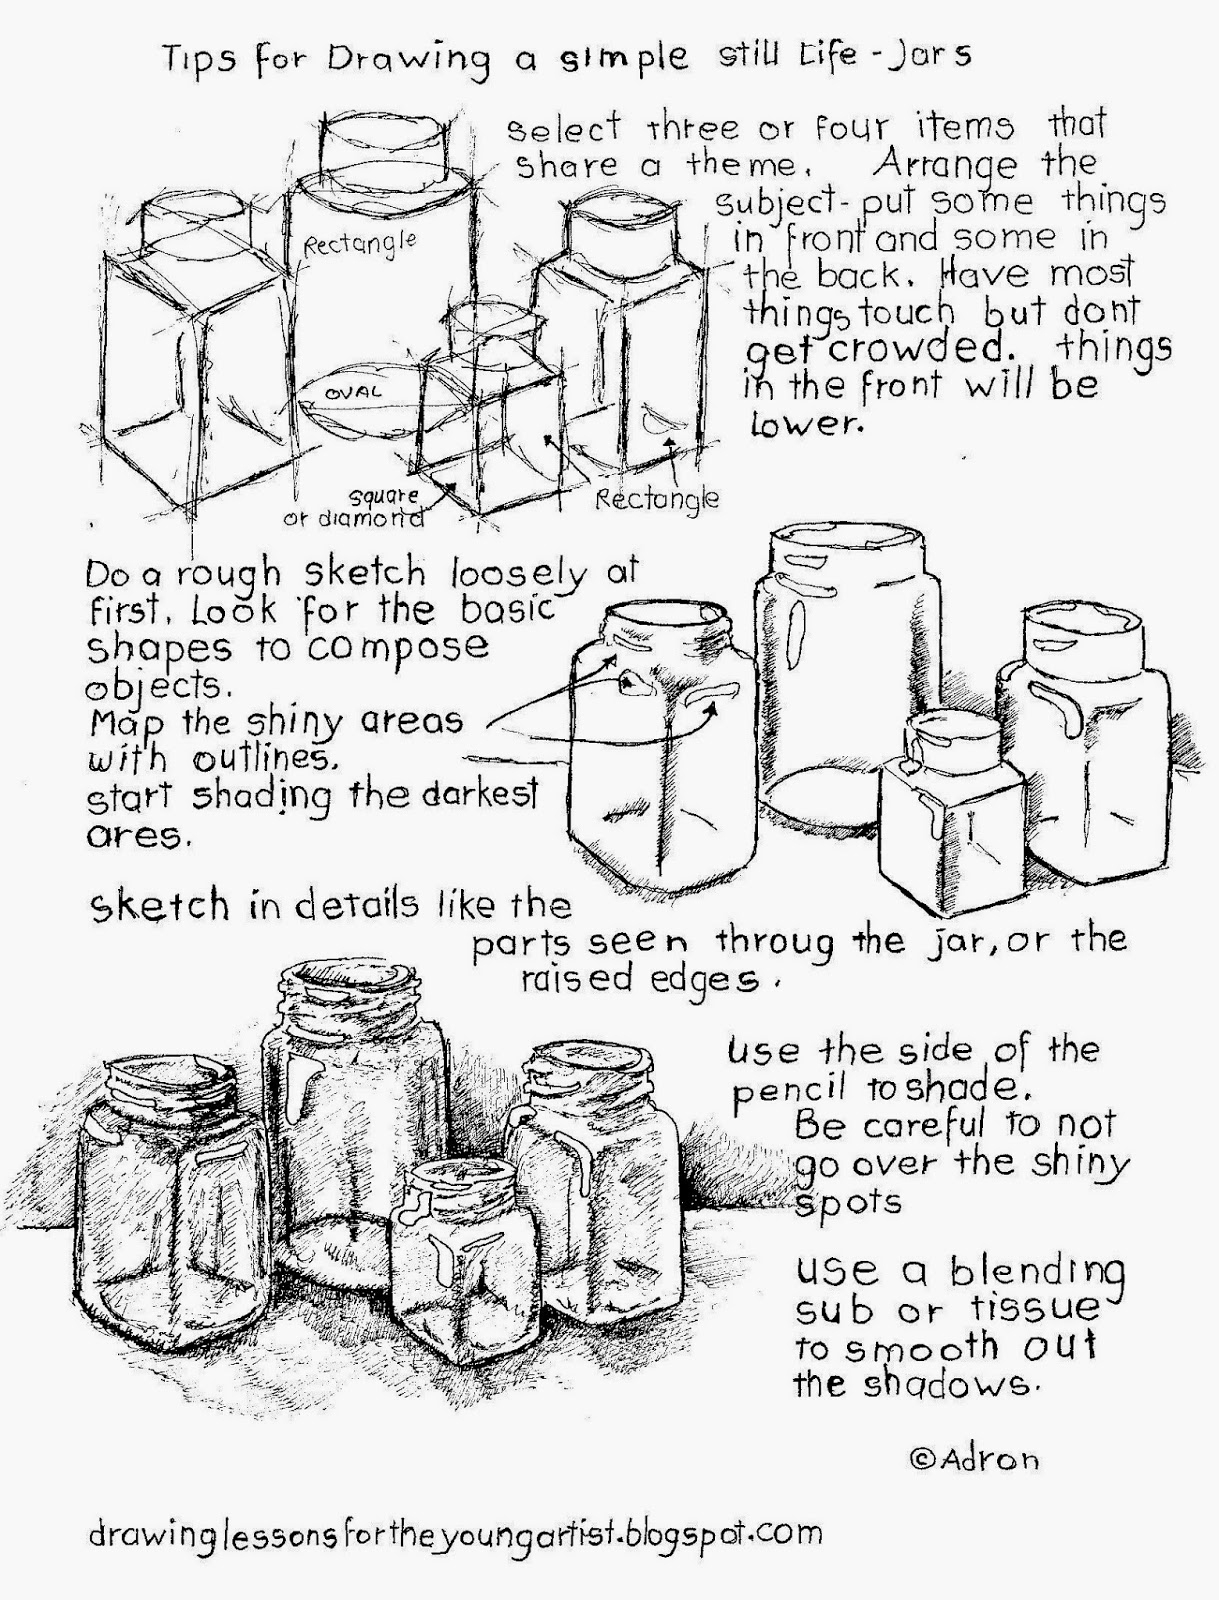 How To Draw A Still Life With Free Printable Worksheet - Homeschool - Free Printable Drawing Worksheets